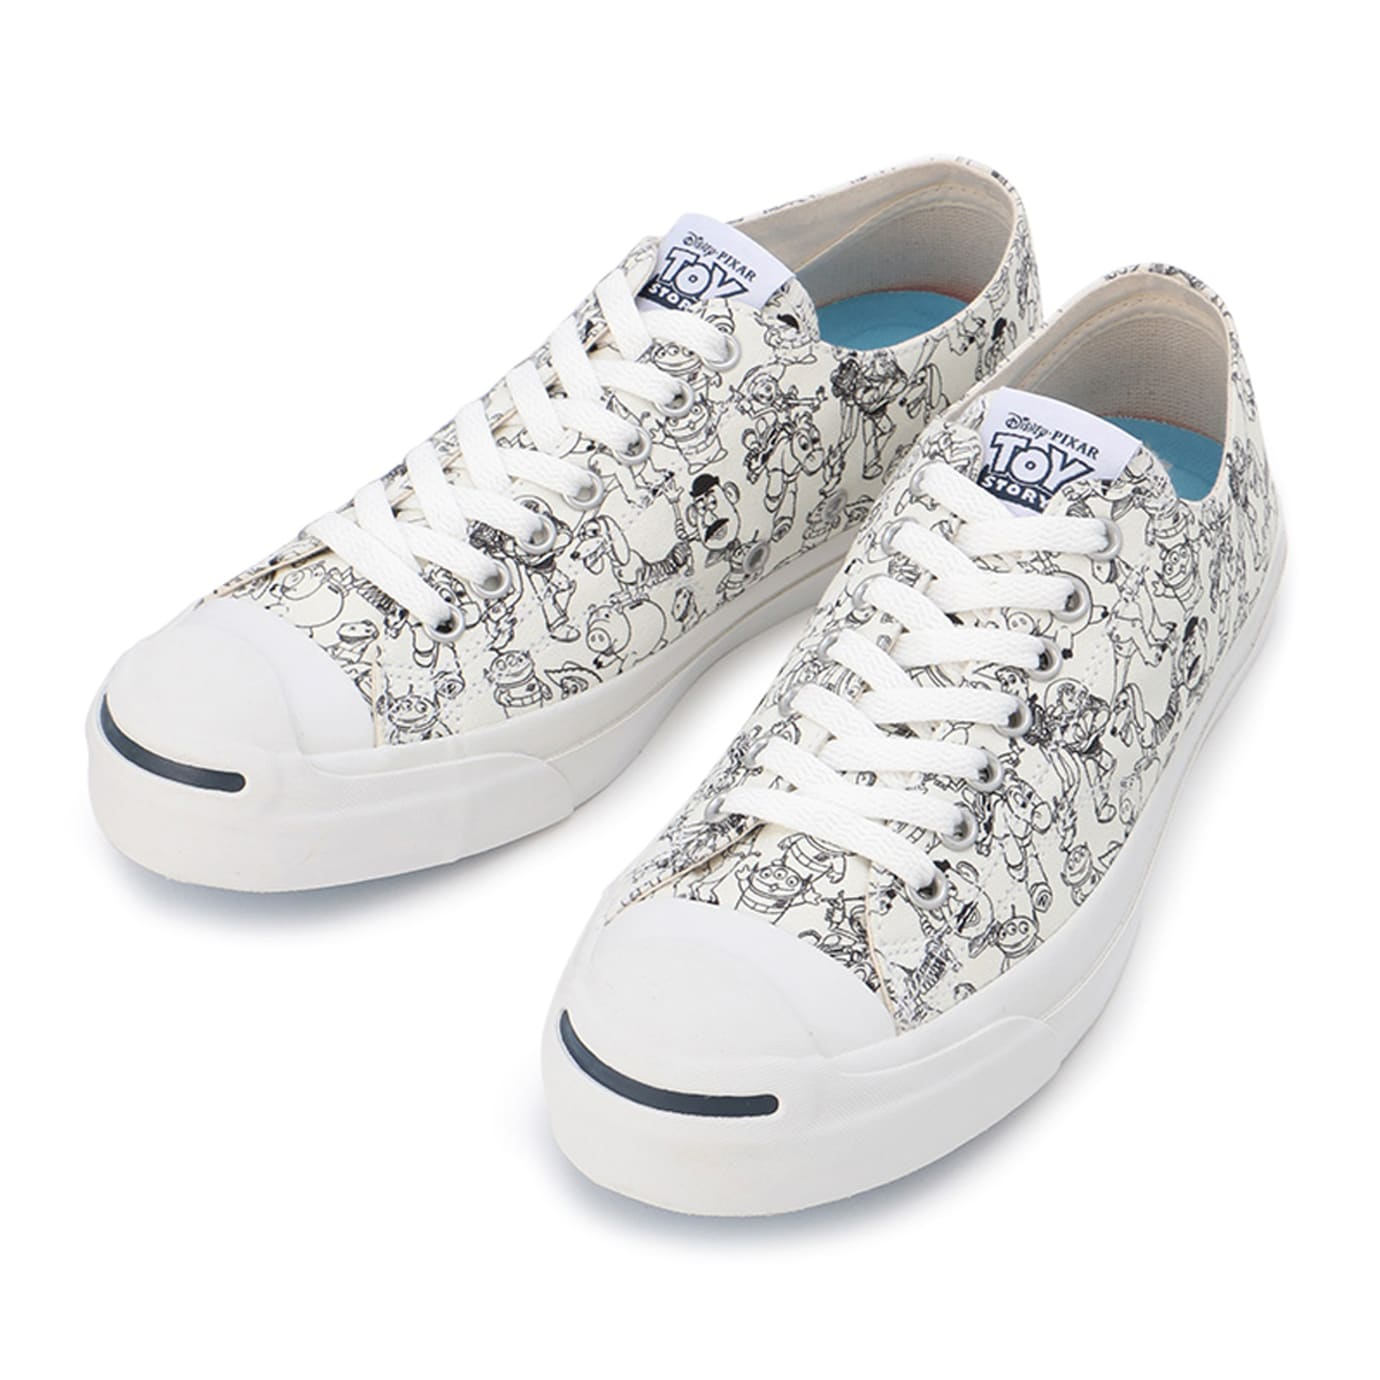 Toy Story x Converse Jack Purcell 32263300 1